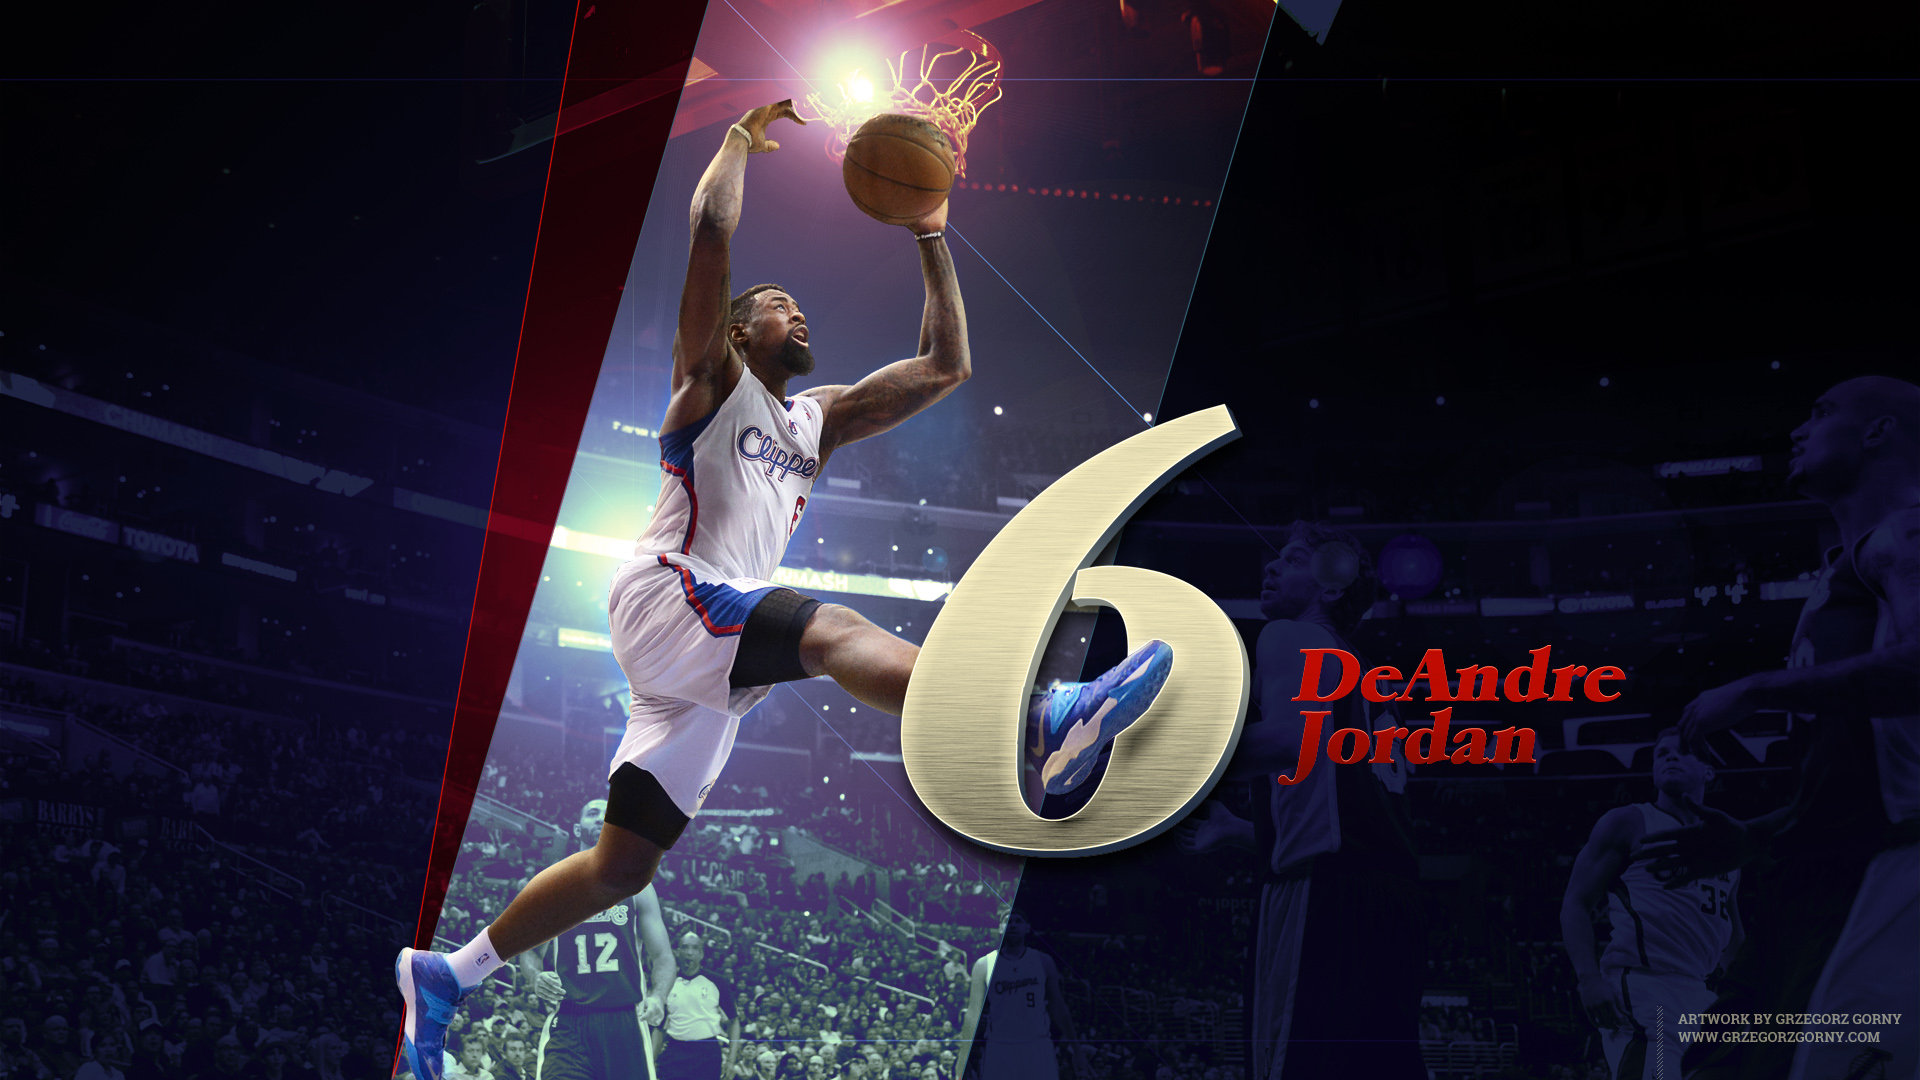 deandre jordan wallpaper by trzygie on deviantart